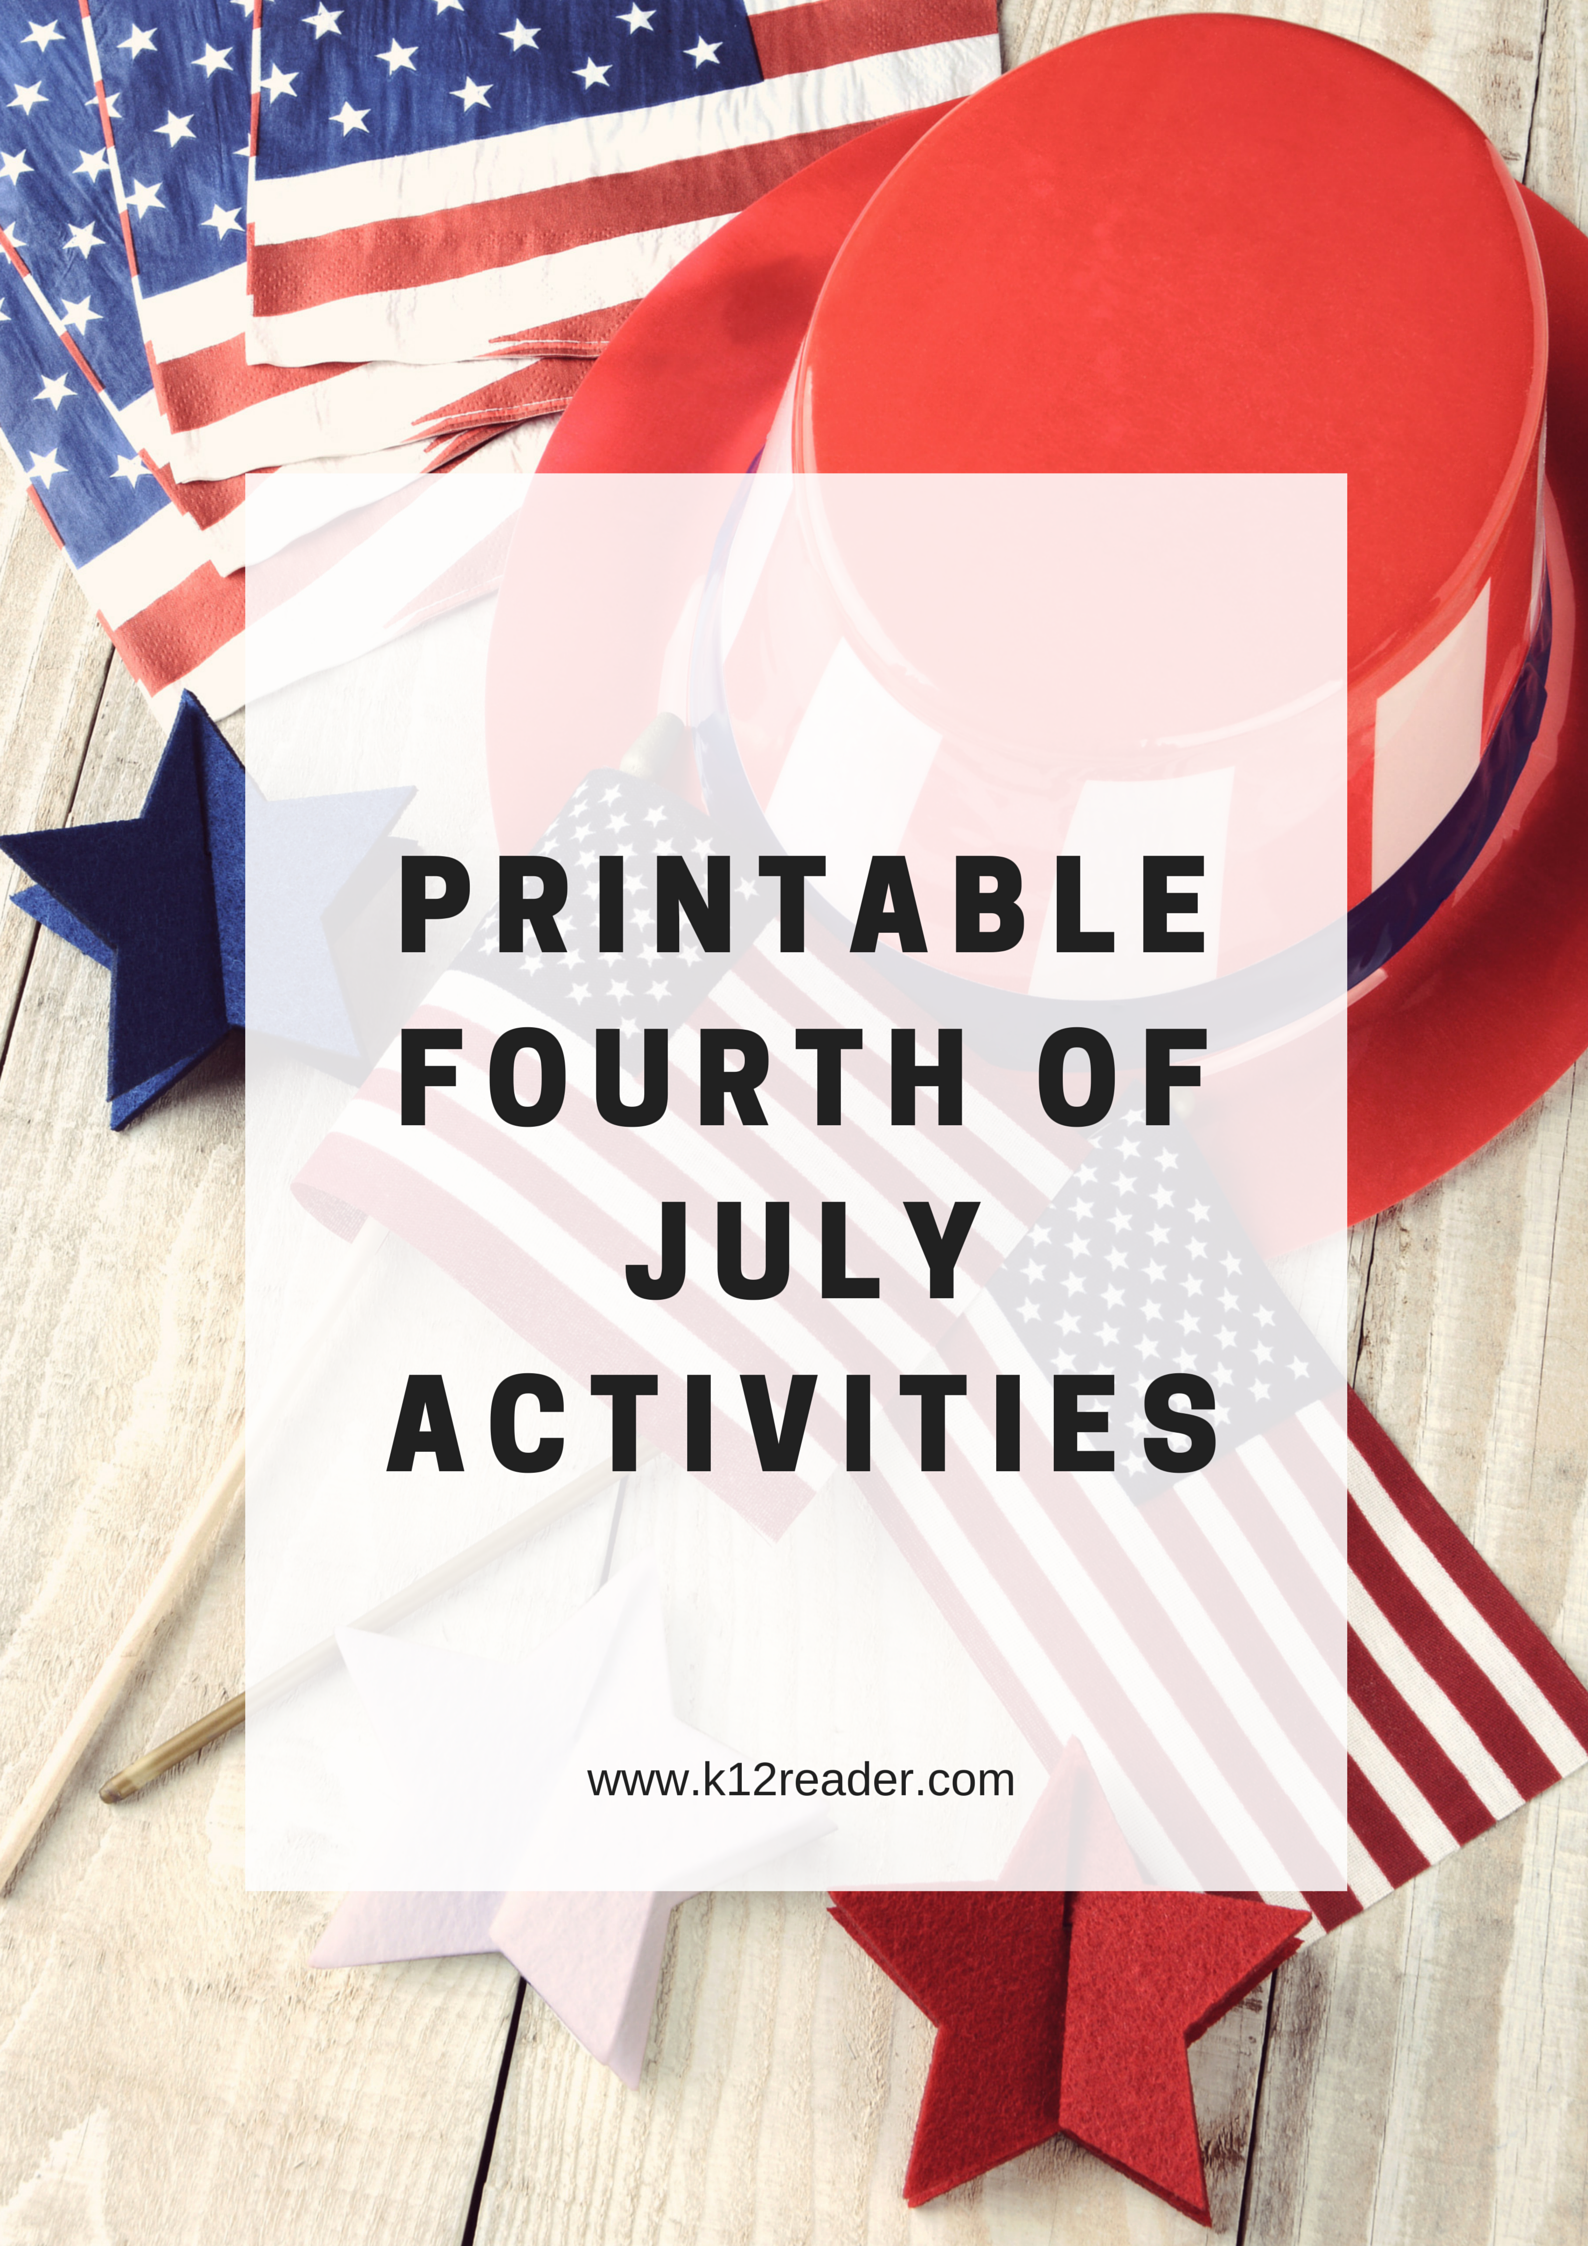 Free Printable Classroom Activities For The 4th Of July